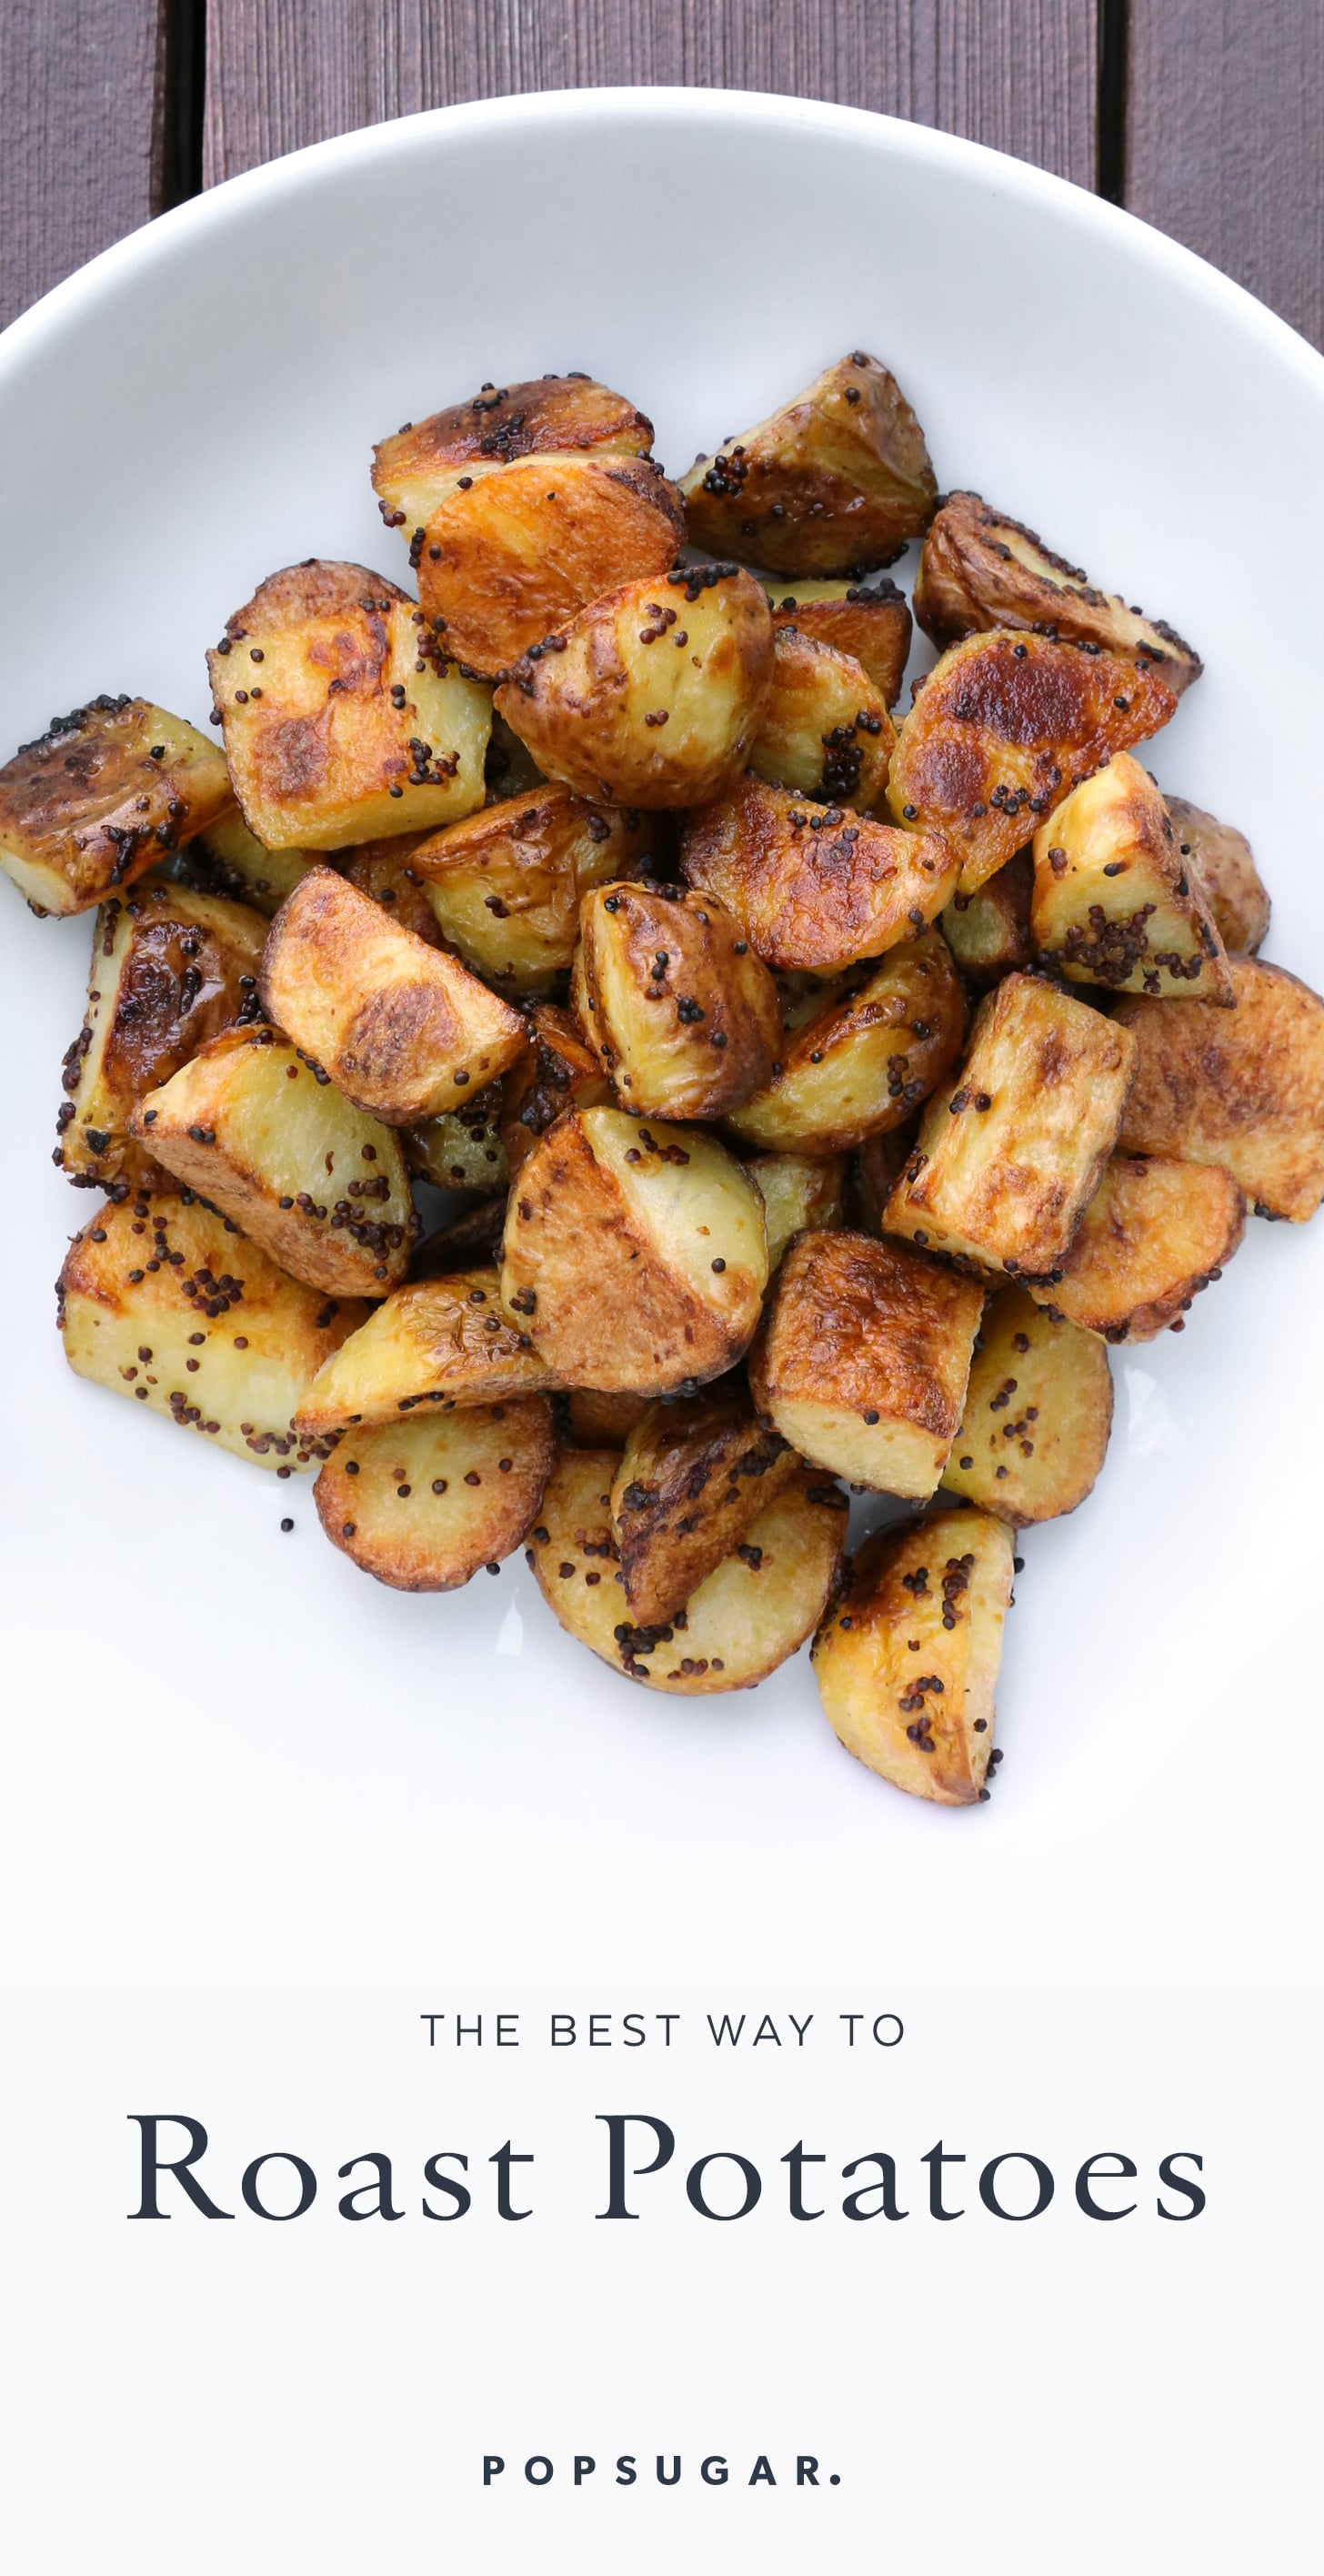 Mustard roasted potatoes recipe popsugar food forumfinder Choice Image